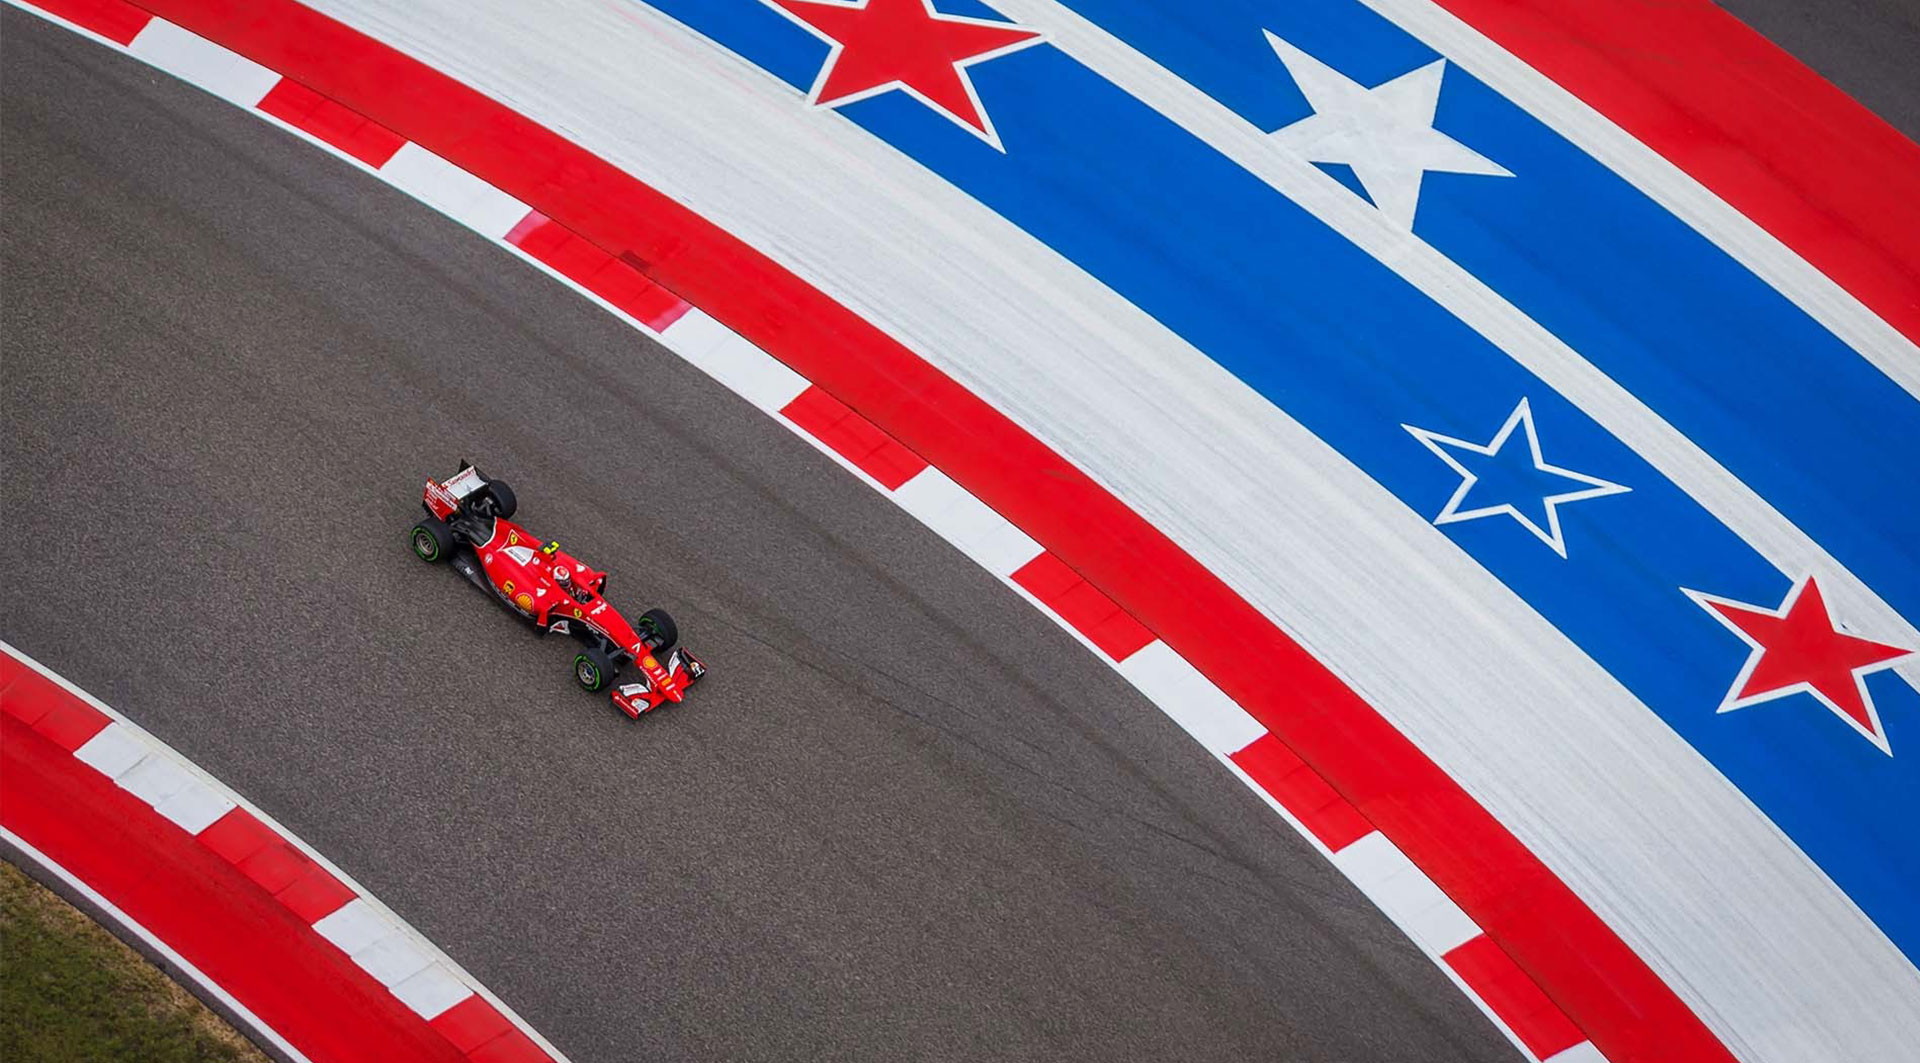 Us Grand Prix >> 2018 Us Grand Prix Packages Travel Packages Roadtrips